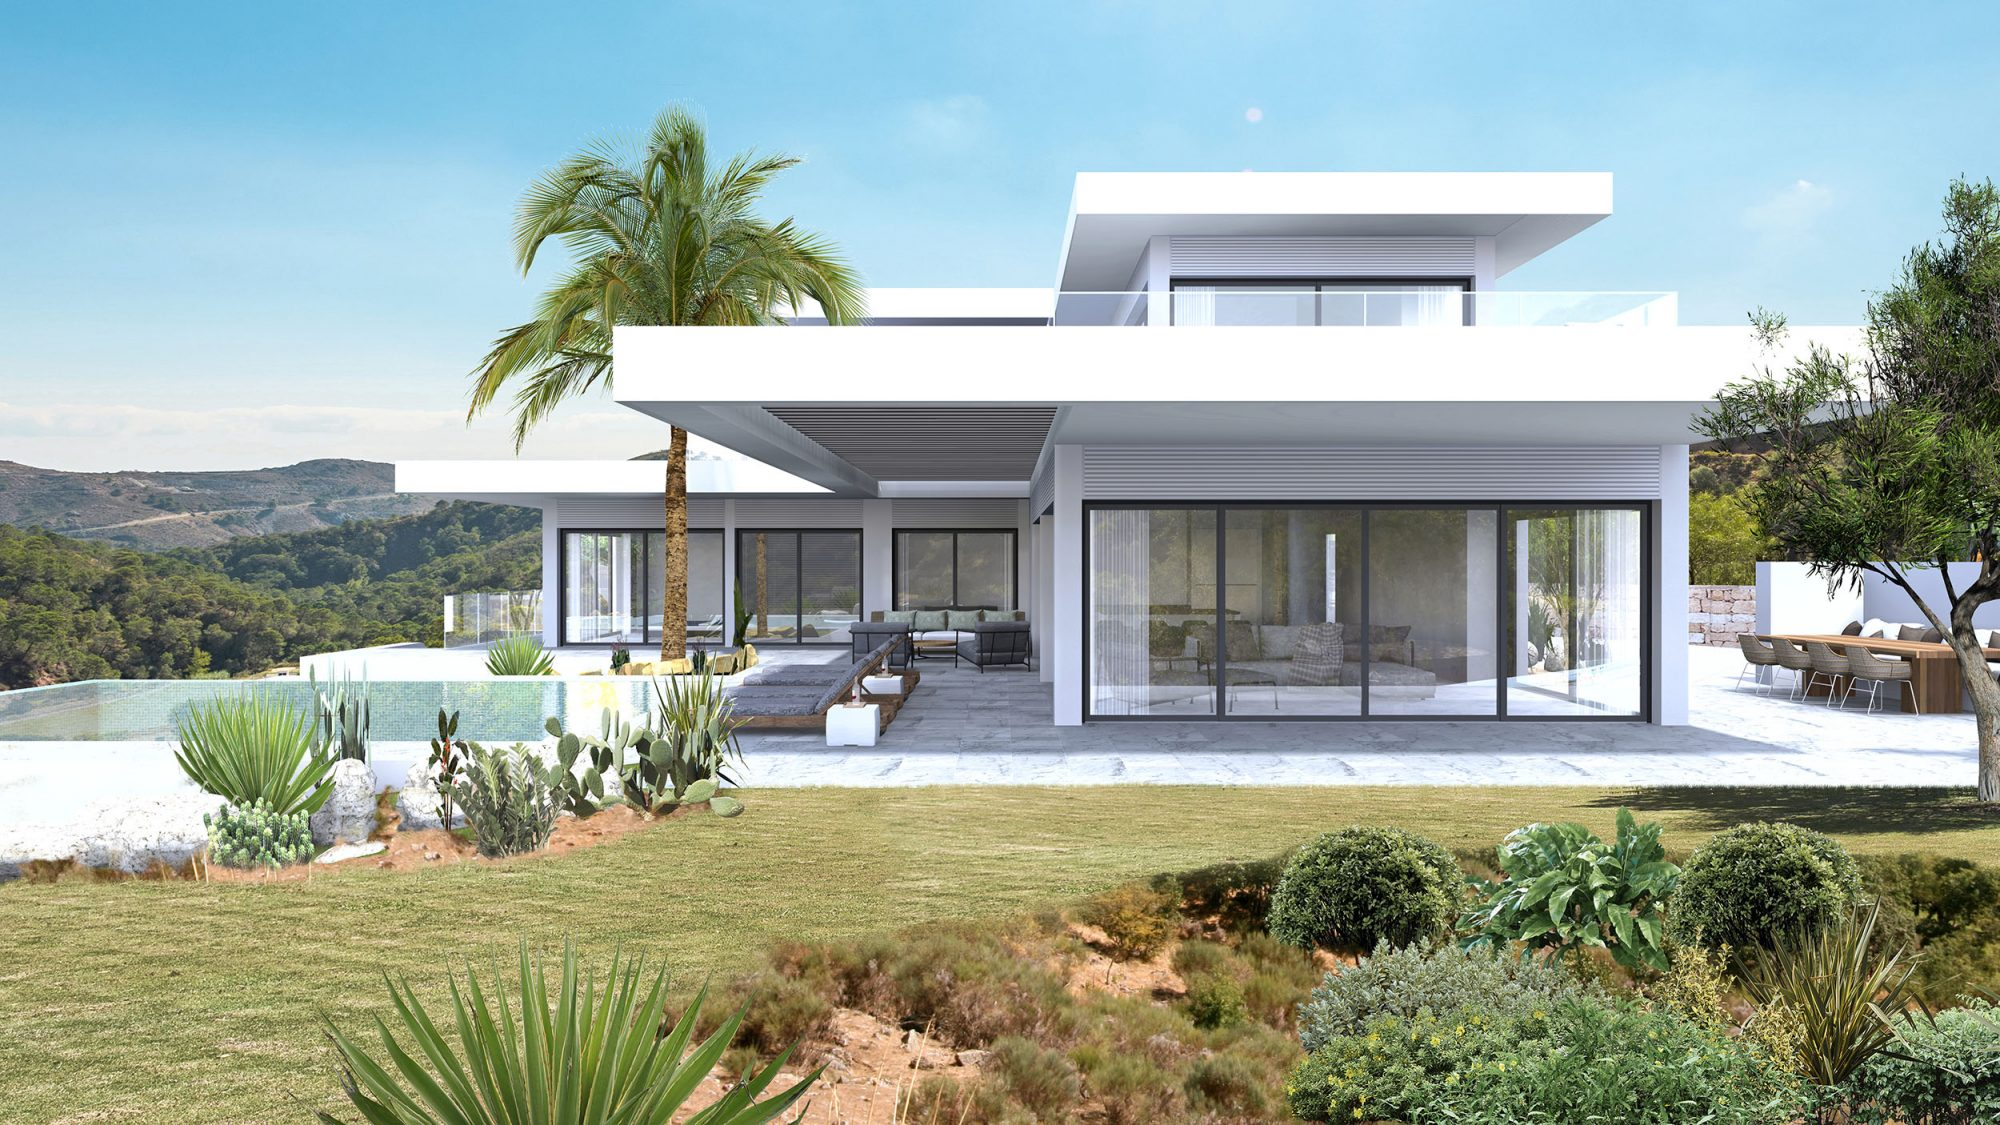 Monte Mayor villa 3D design new spain build arcitectuur visualisation